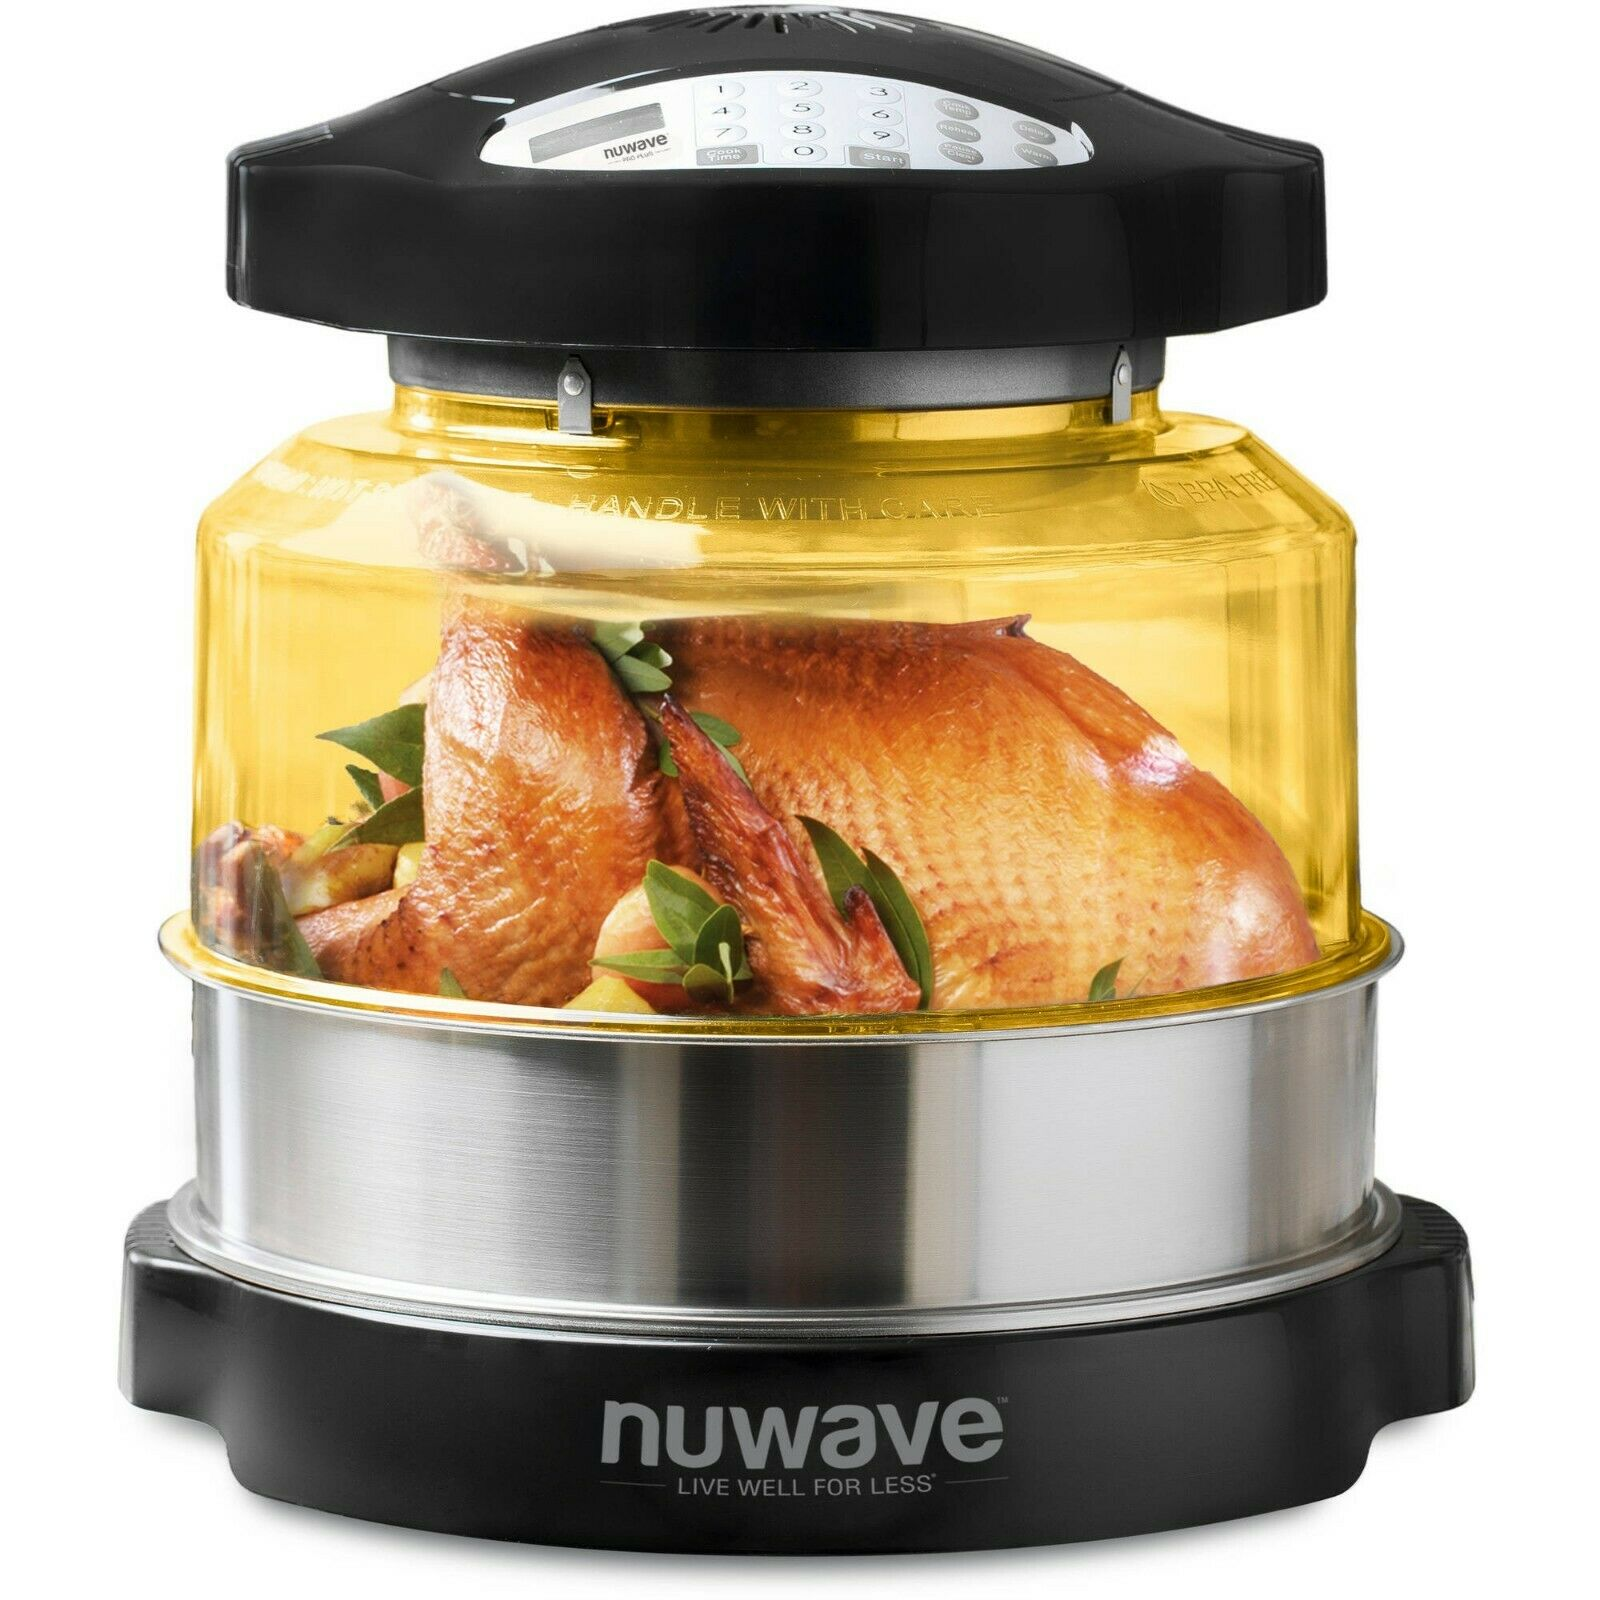 REPLACEMENT PARTS for NuWave Oven Pro Plus 20604 20652